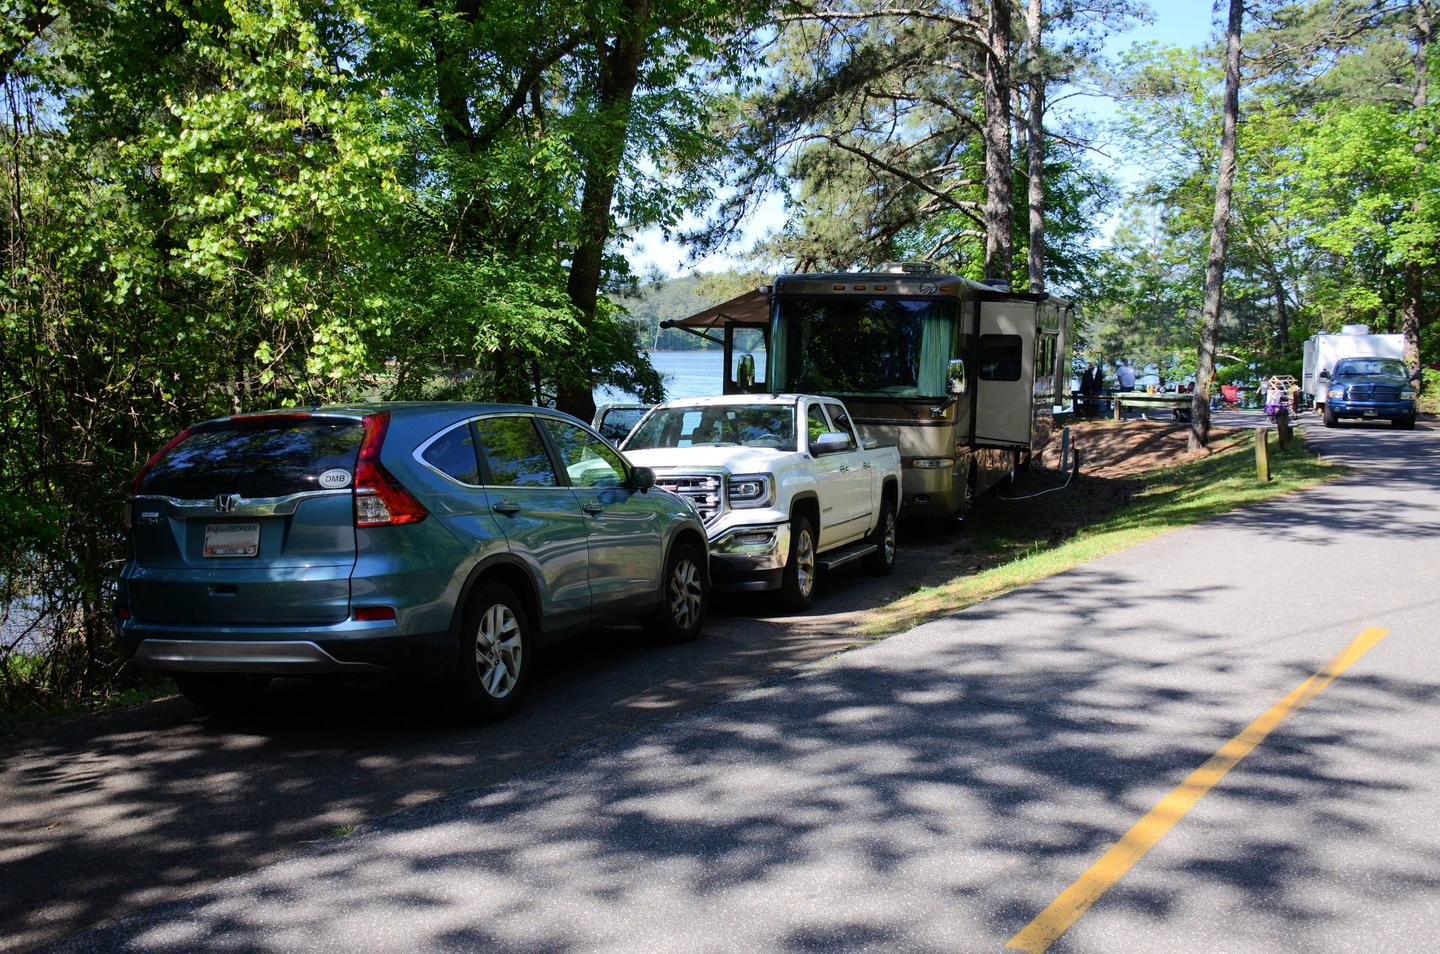 Driveway slope, entrance angle, utilities-side clearance.McKinney Campground, campsite 50.